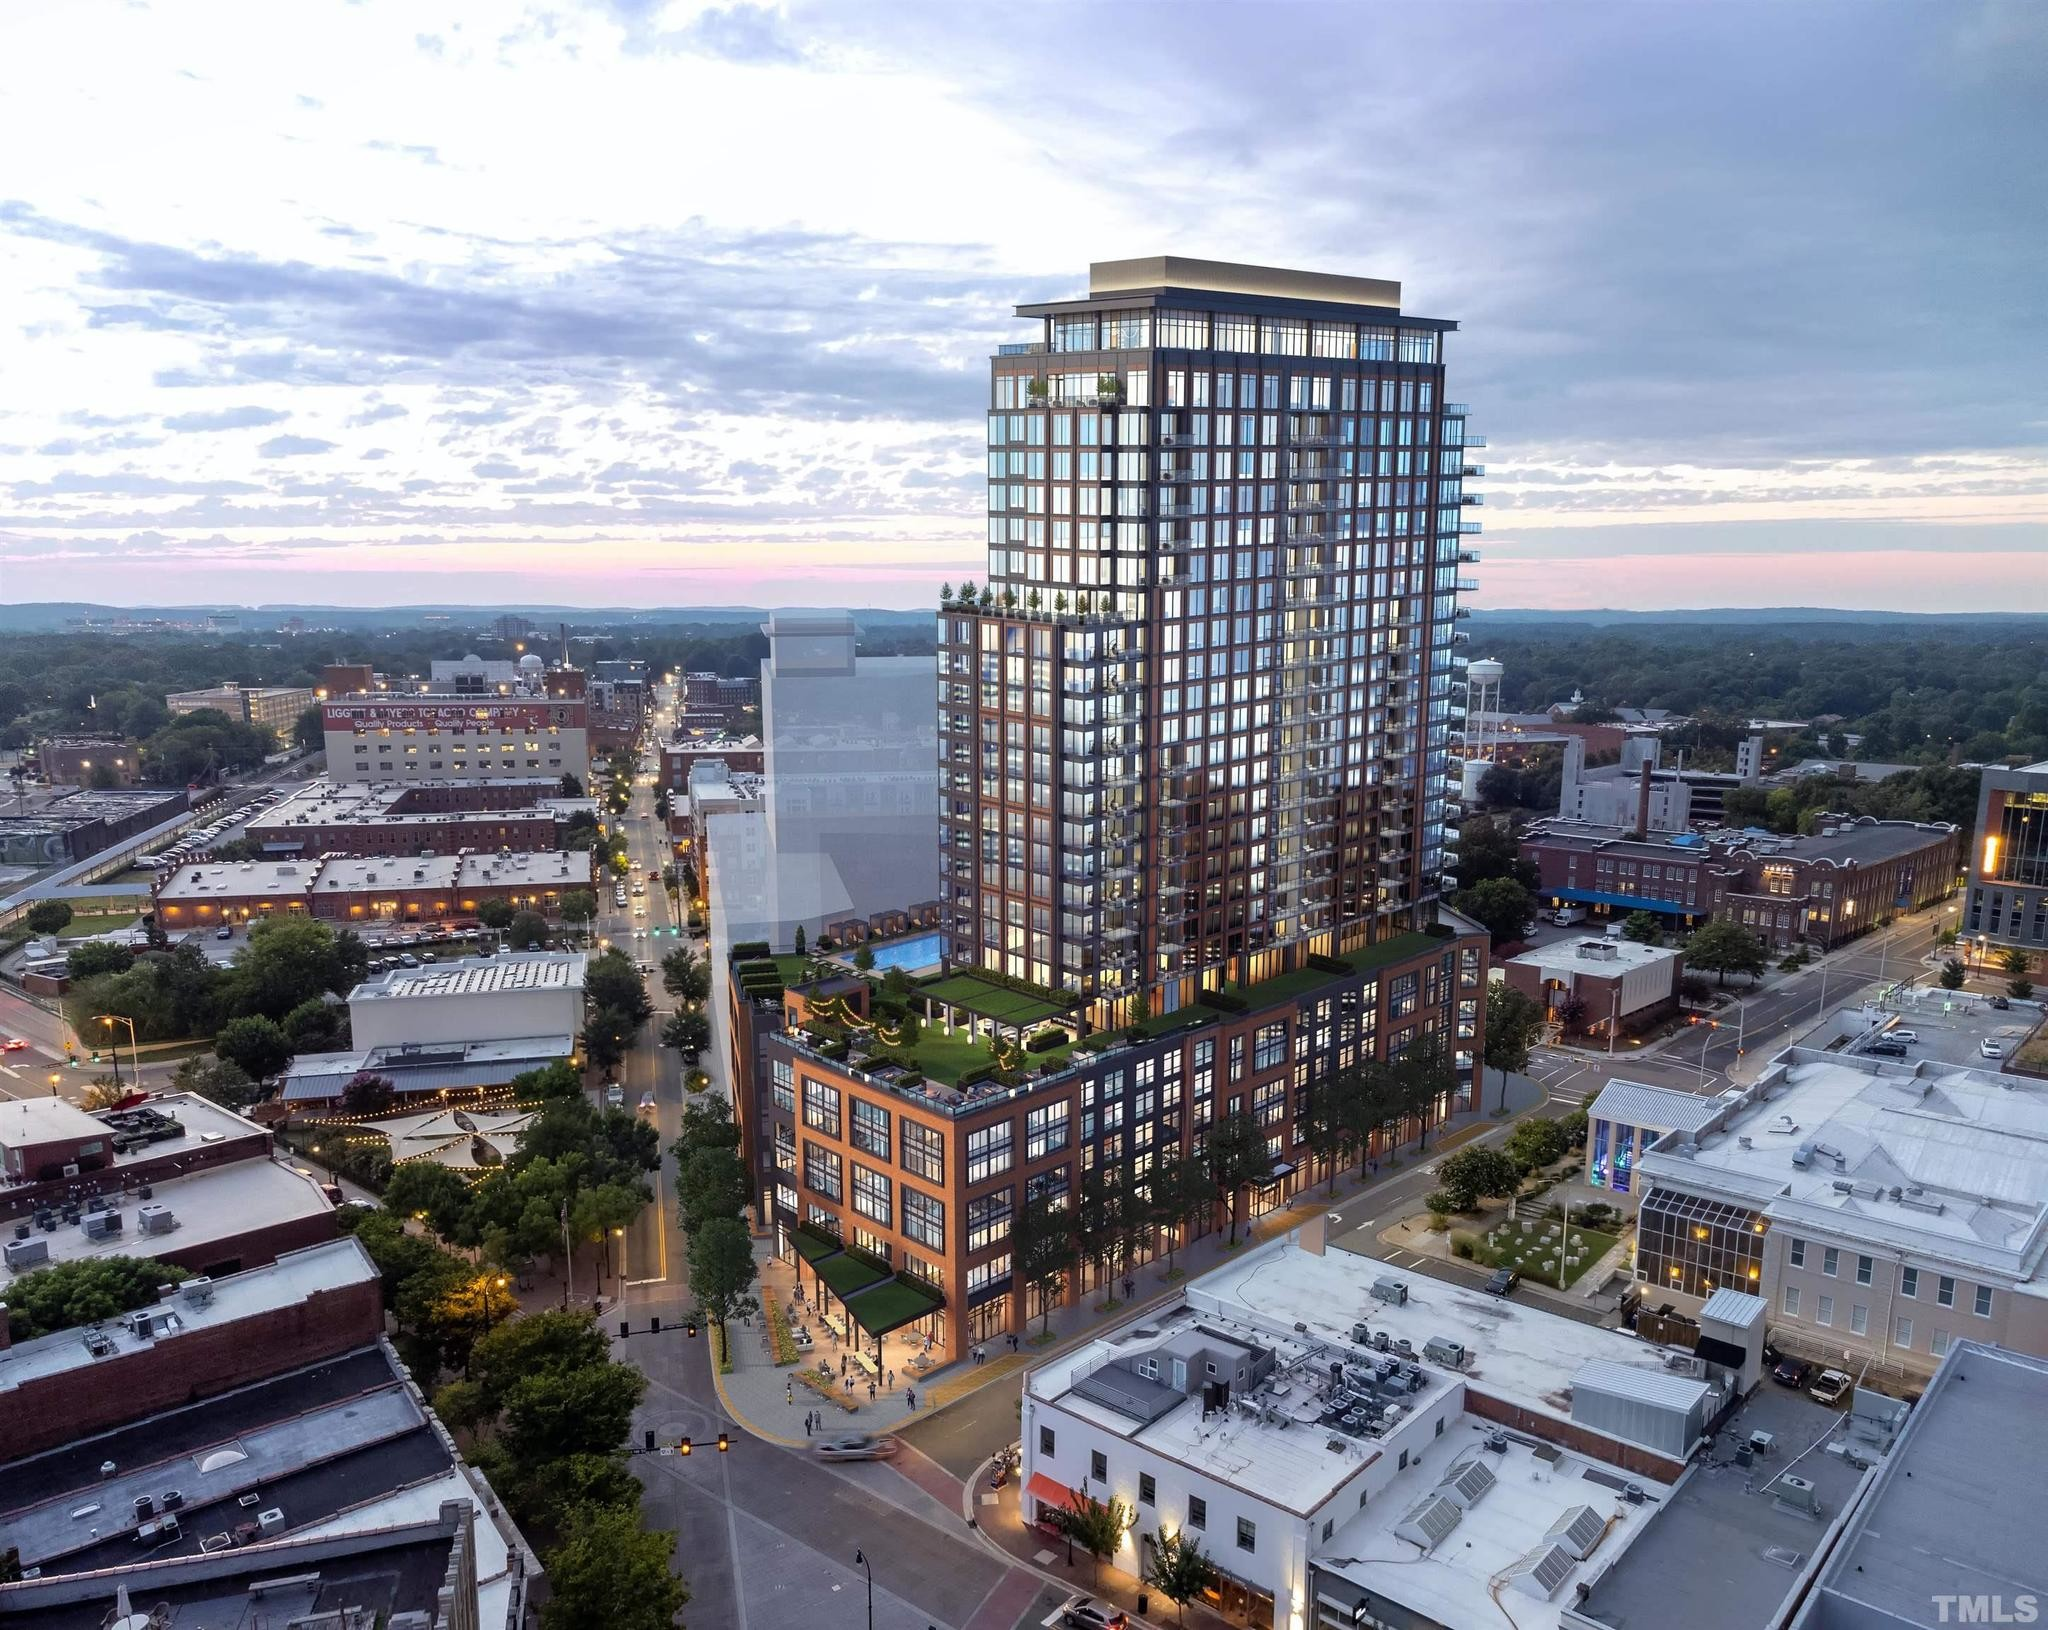 1-Story Condo In Downtown Durham